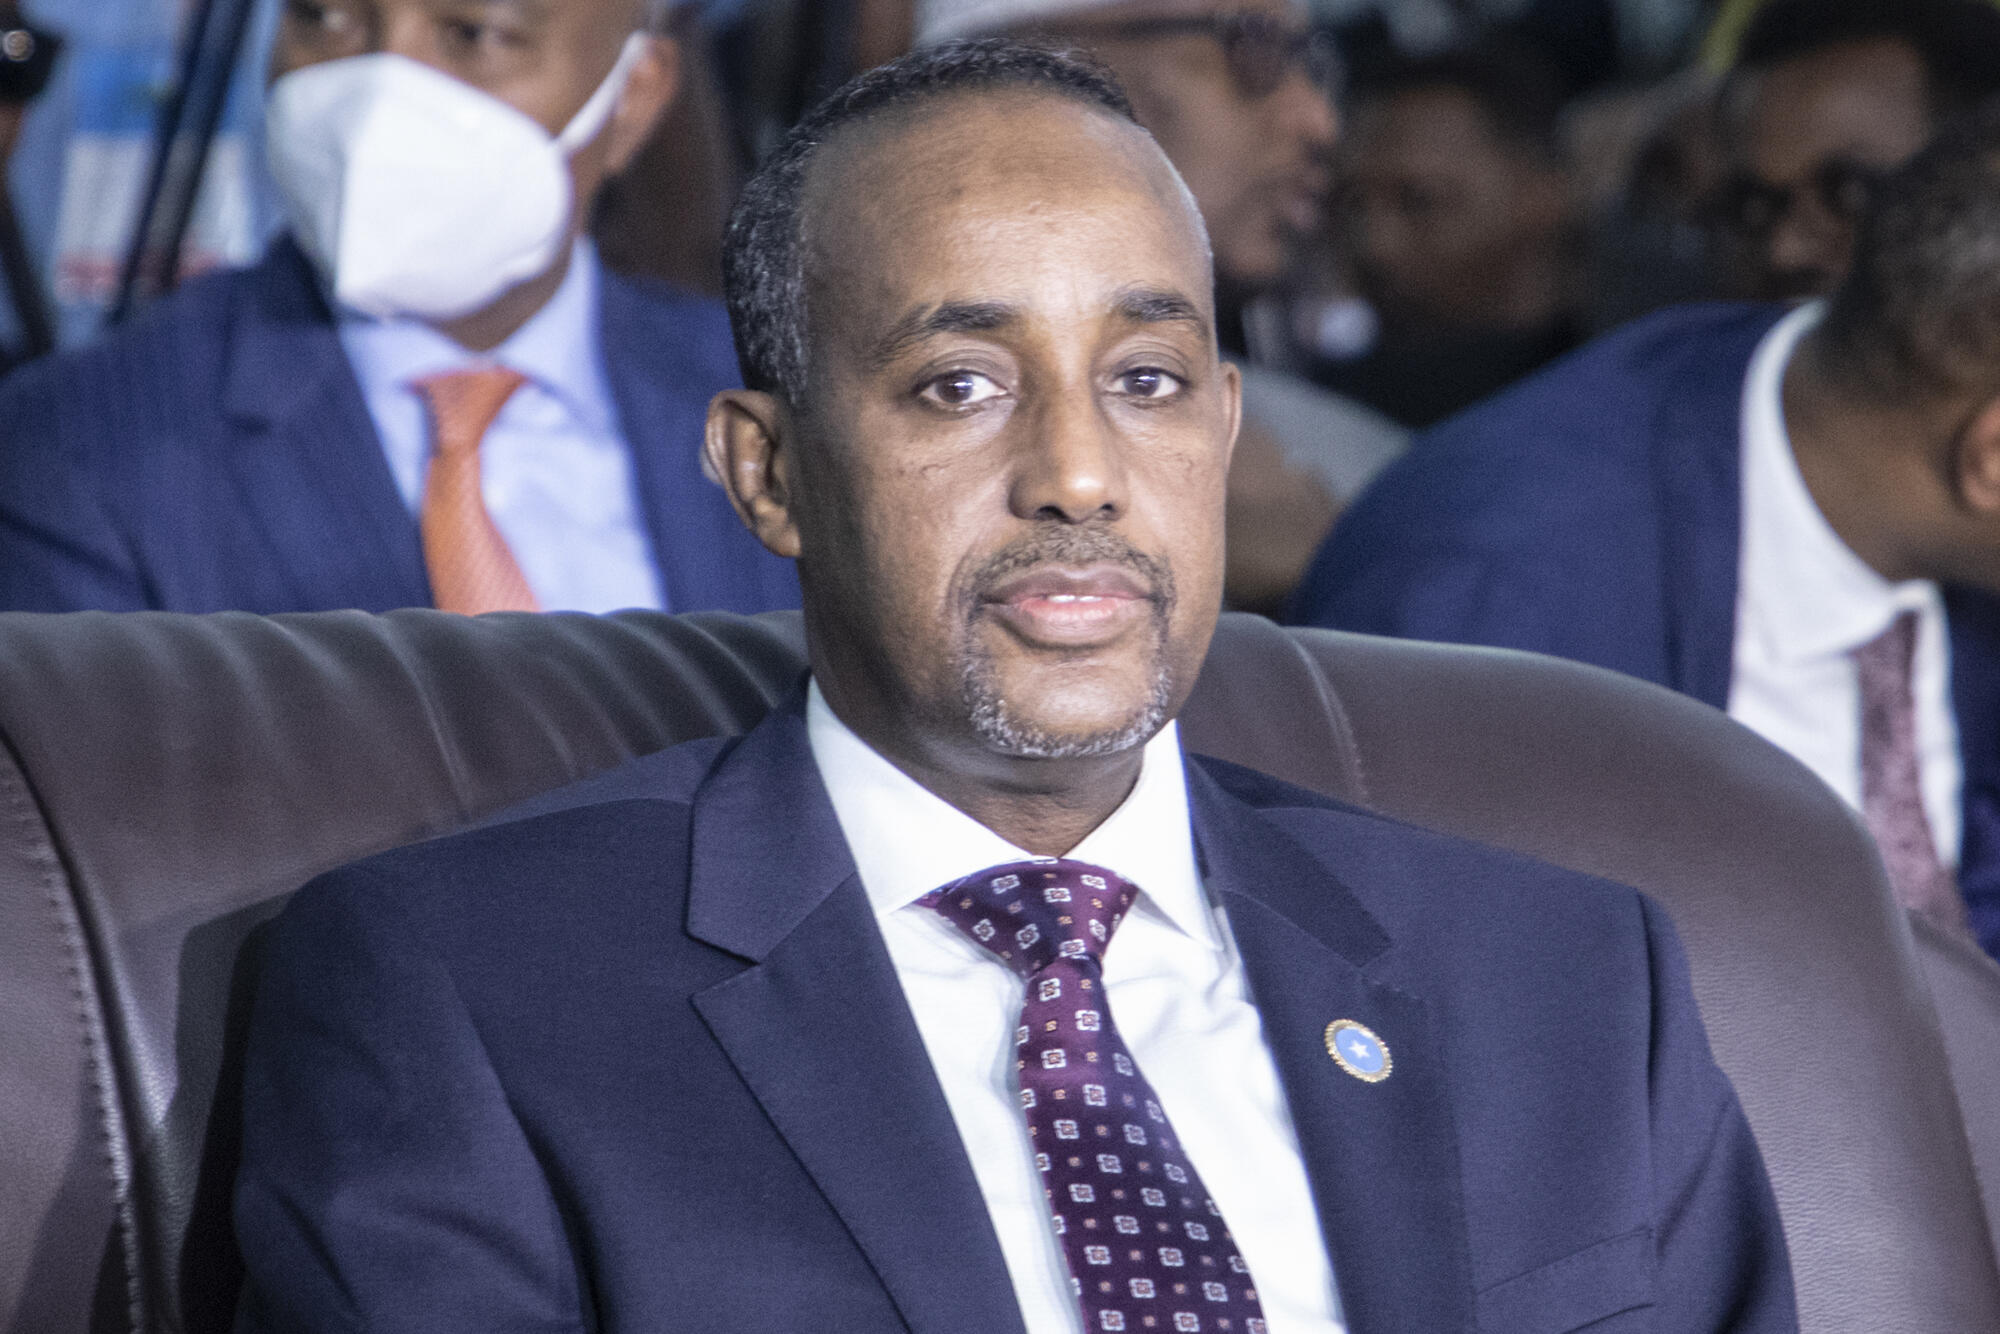 Somalia's Prime Minister Mohamed Hussein Roble was appointed by the president in September last year